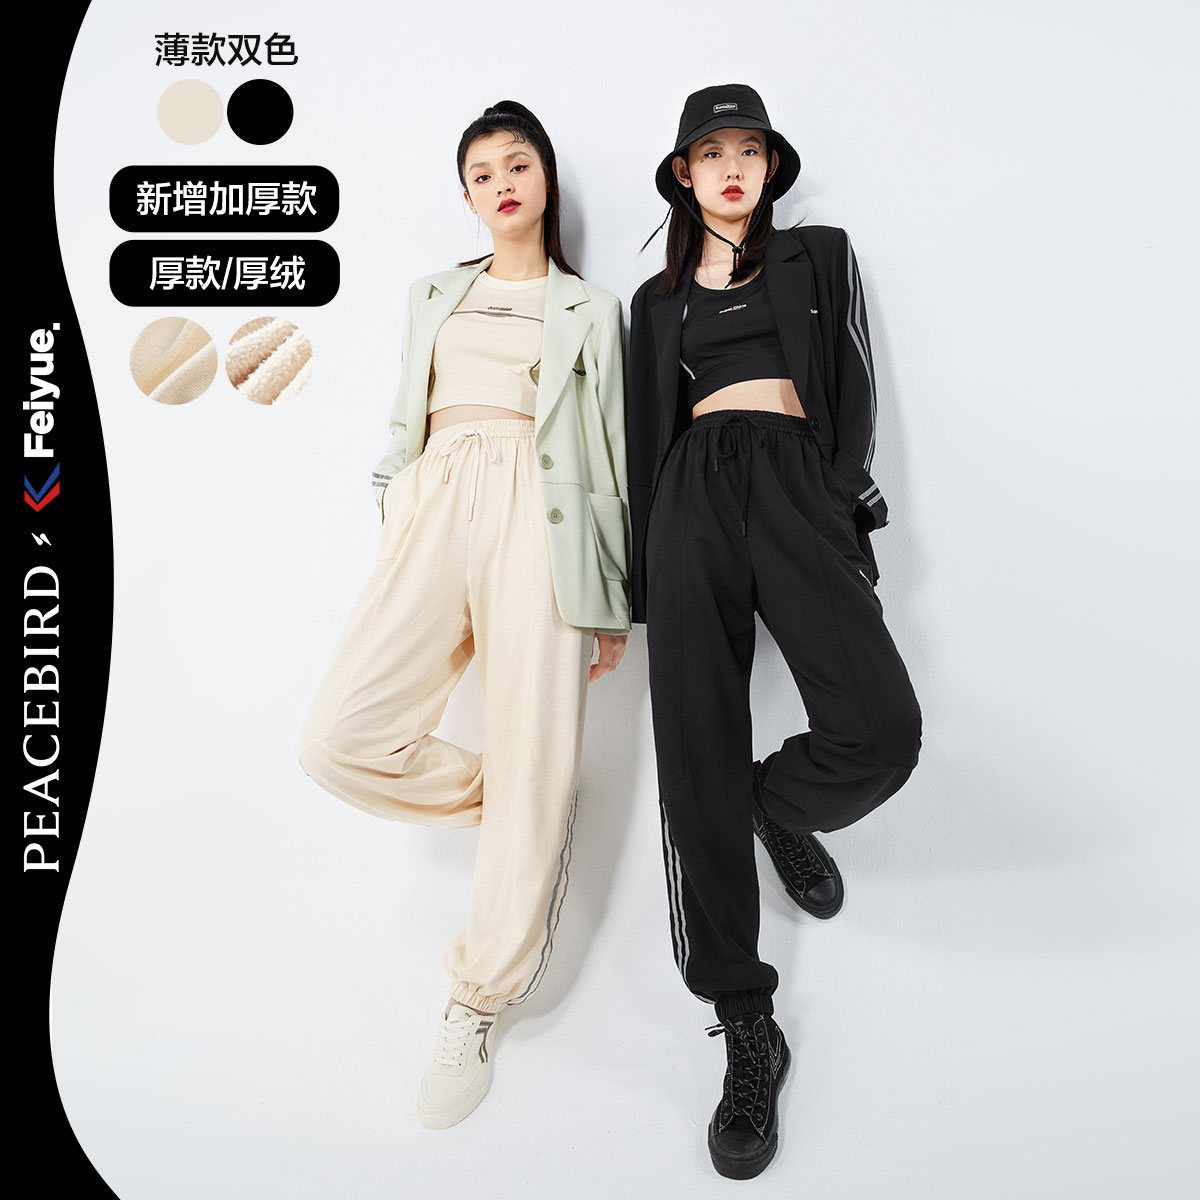 Taipingniao leap joint store the same 2020 new national trend sports pants women's loose straight legged casual pants